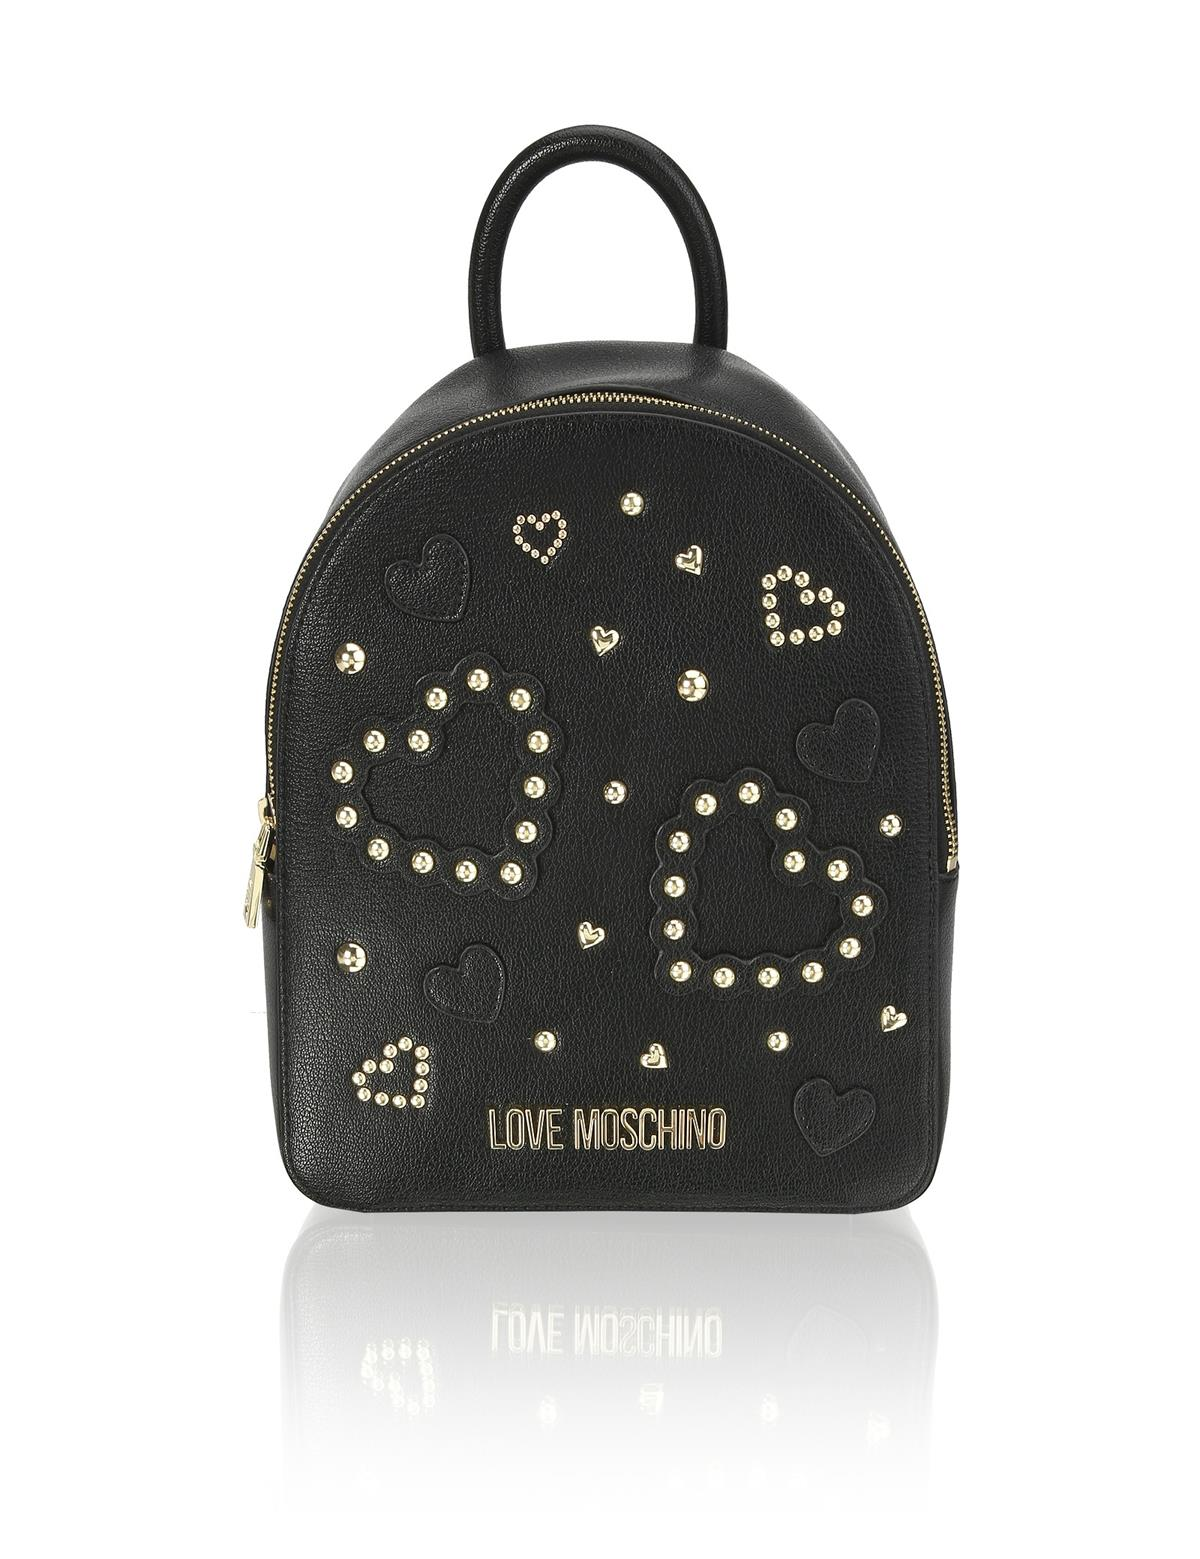 HUMANIC 50 Love Moschino Backpack mit Studs EUR 200 6131502160